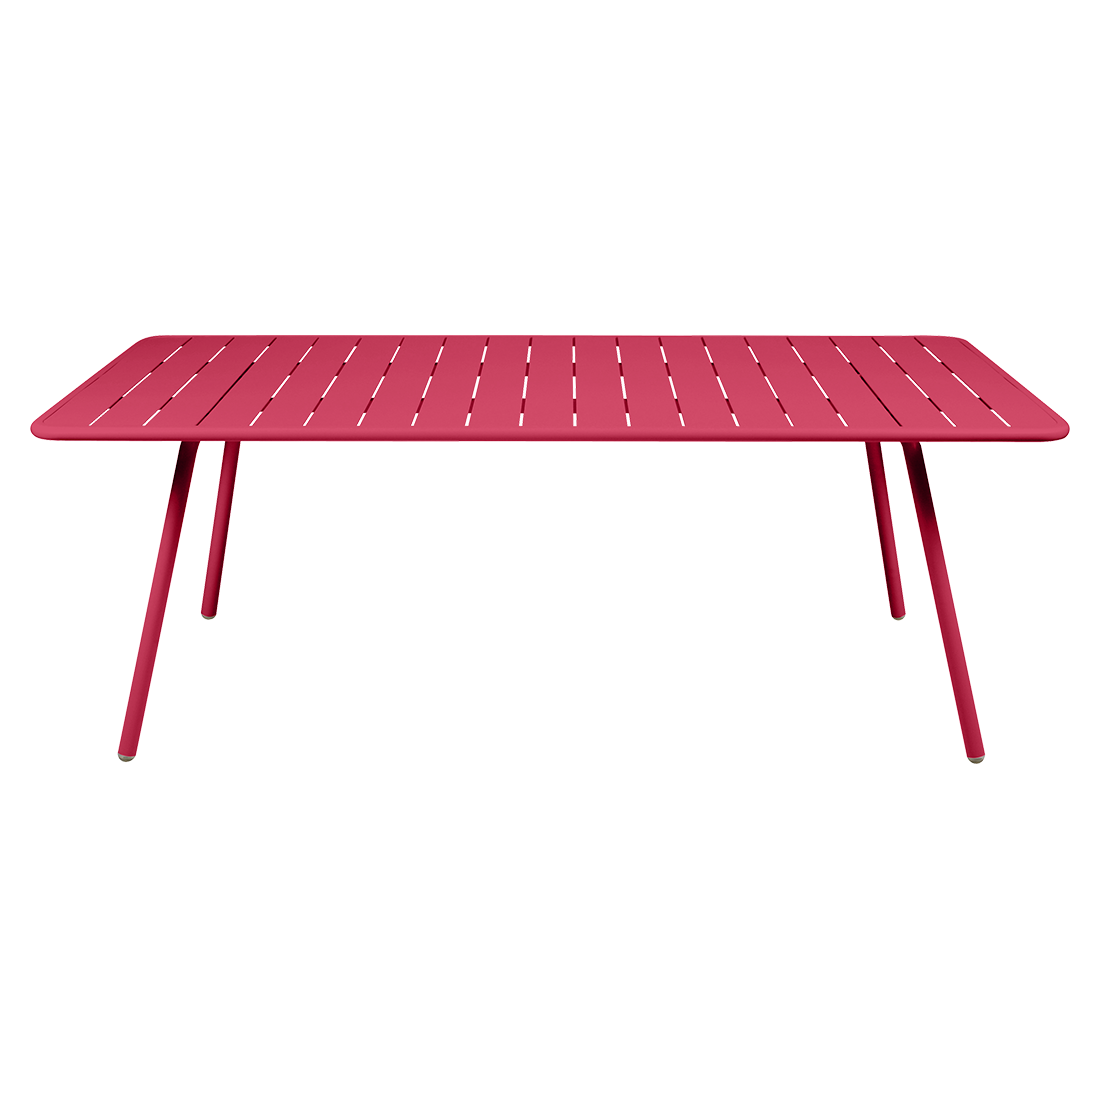 table de jardin, table metal, table fermob, table rose, grande table de jardin, table de jardin rectangulaire